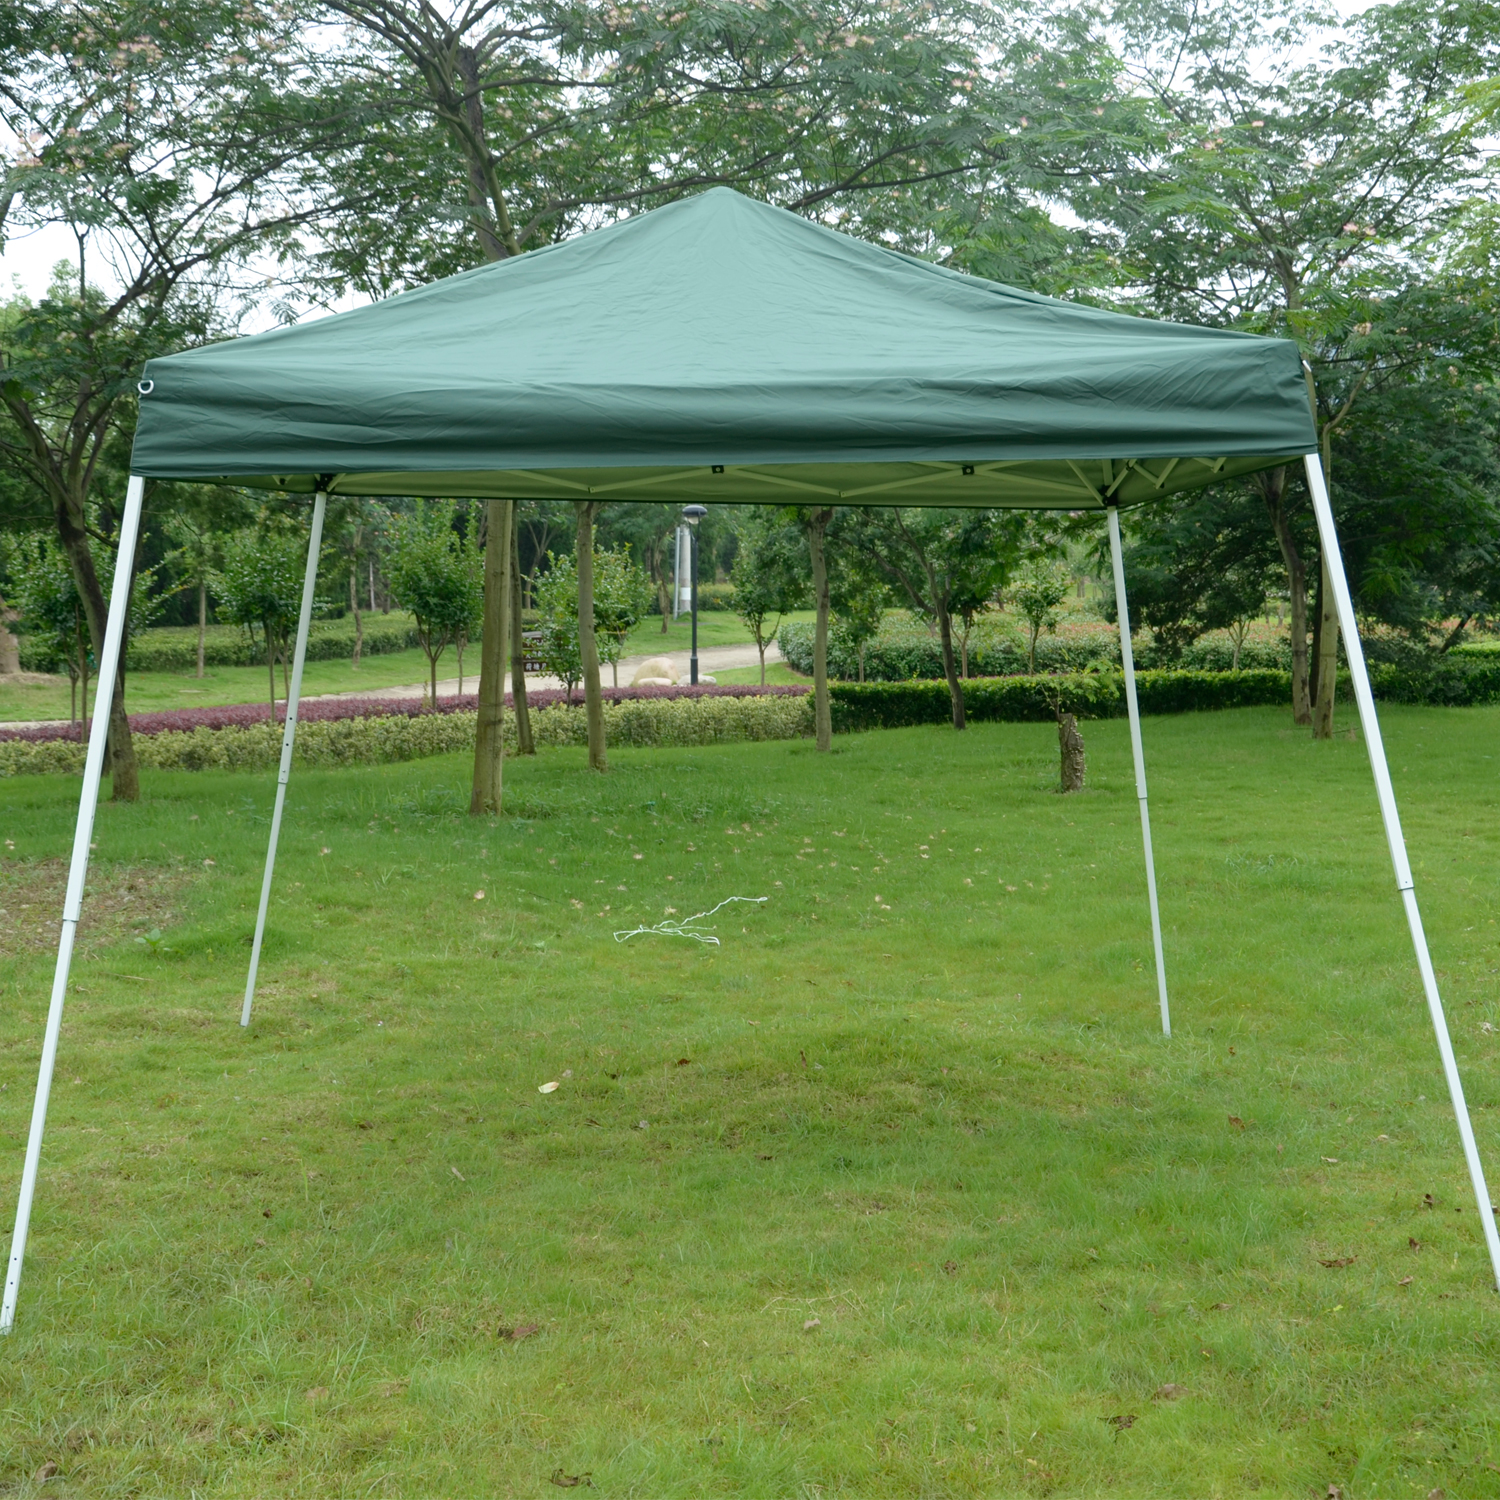 Image of CAD $89.99 Outsunny 10x10ft Easy Pop-up Canopy Party Tent Sunshade Shelter w/Slant Leg / Slant Patio Market Green Canada 25093578960